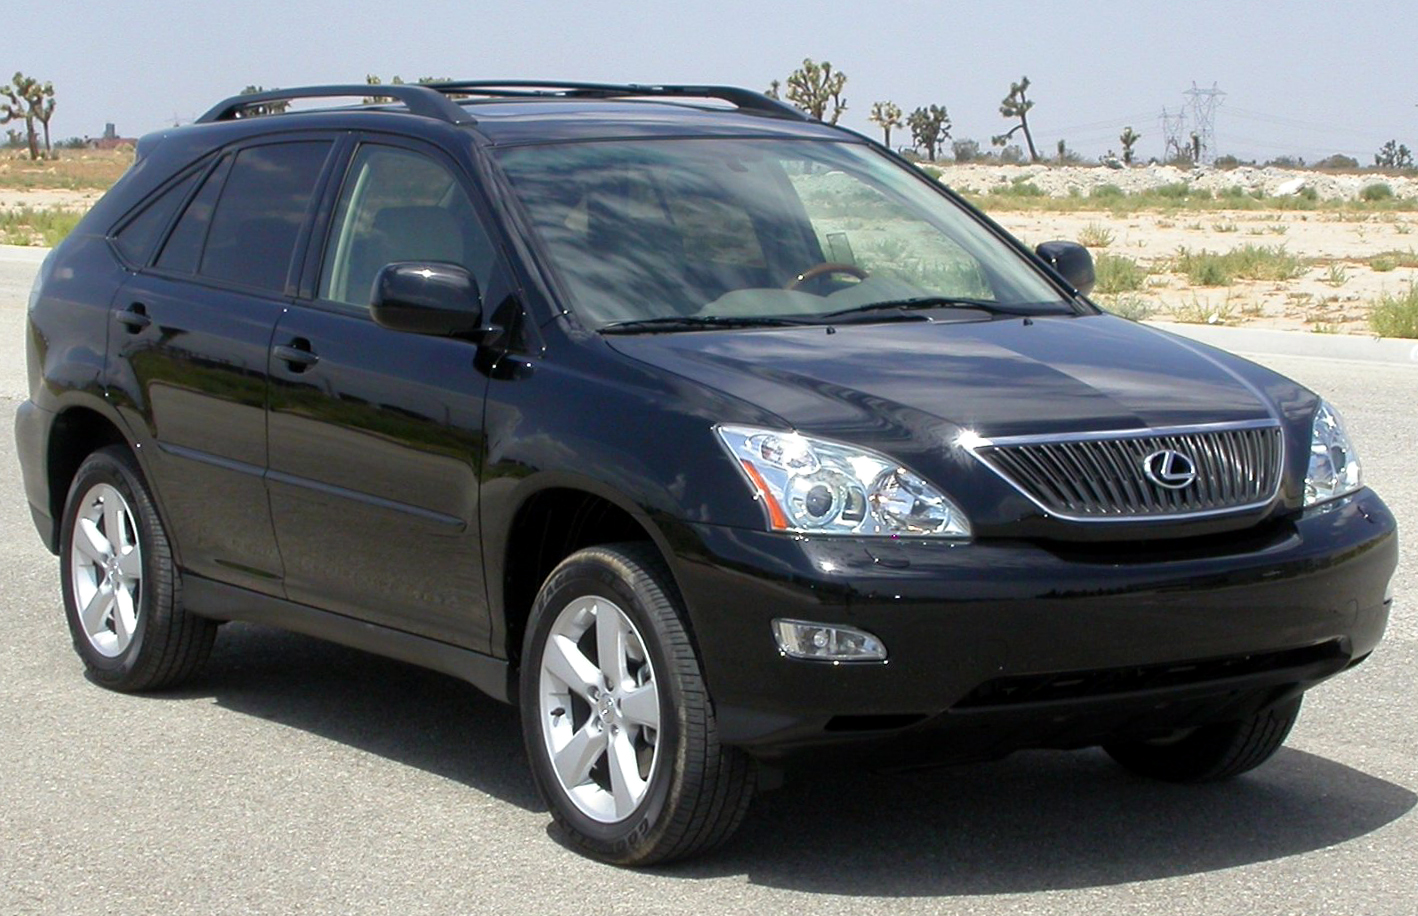 rx330 lexus 2004 lexus rx330 toupeenseen. Black Bedroom Furniture Sets. Home Design Ideas